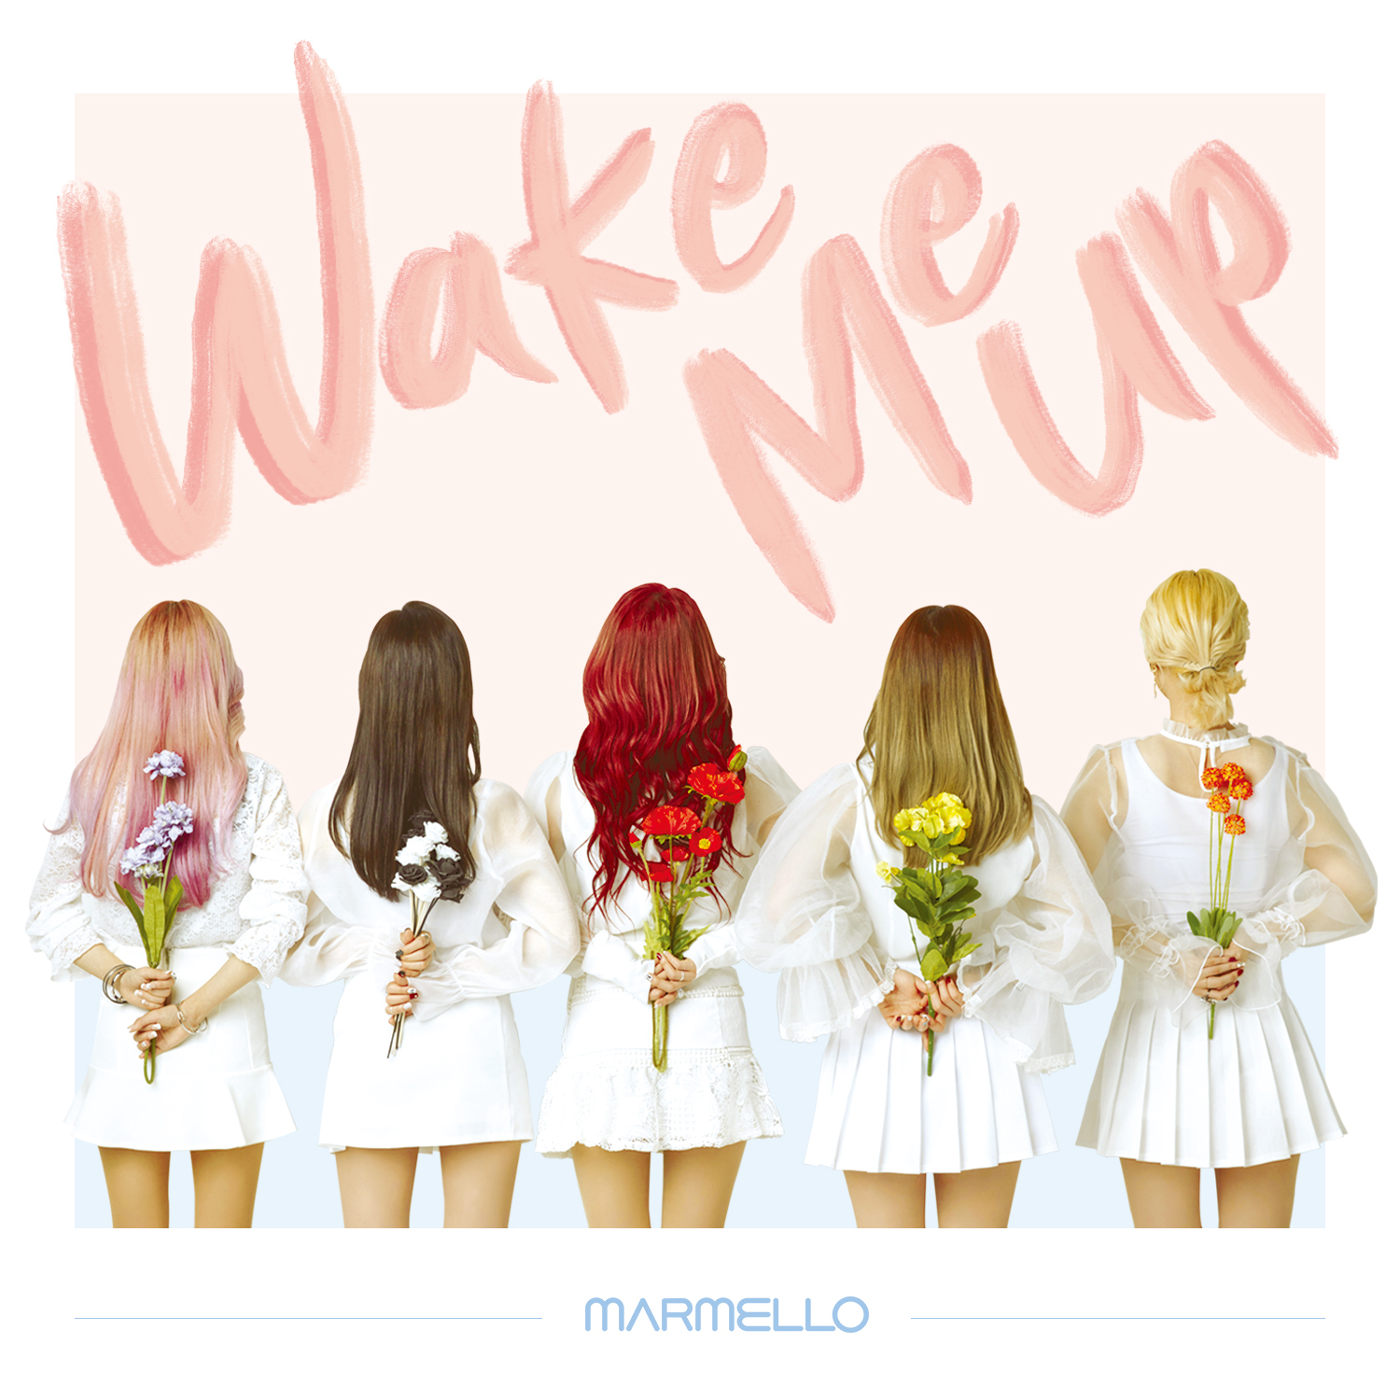 Wake Me Up (MARMELLO)